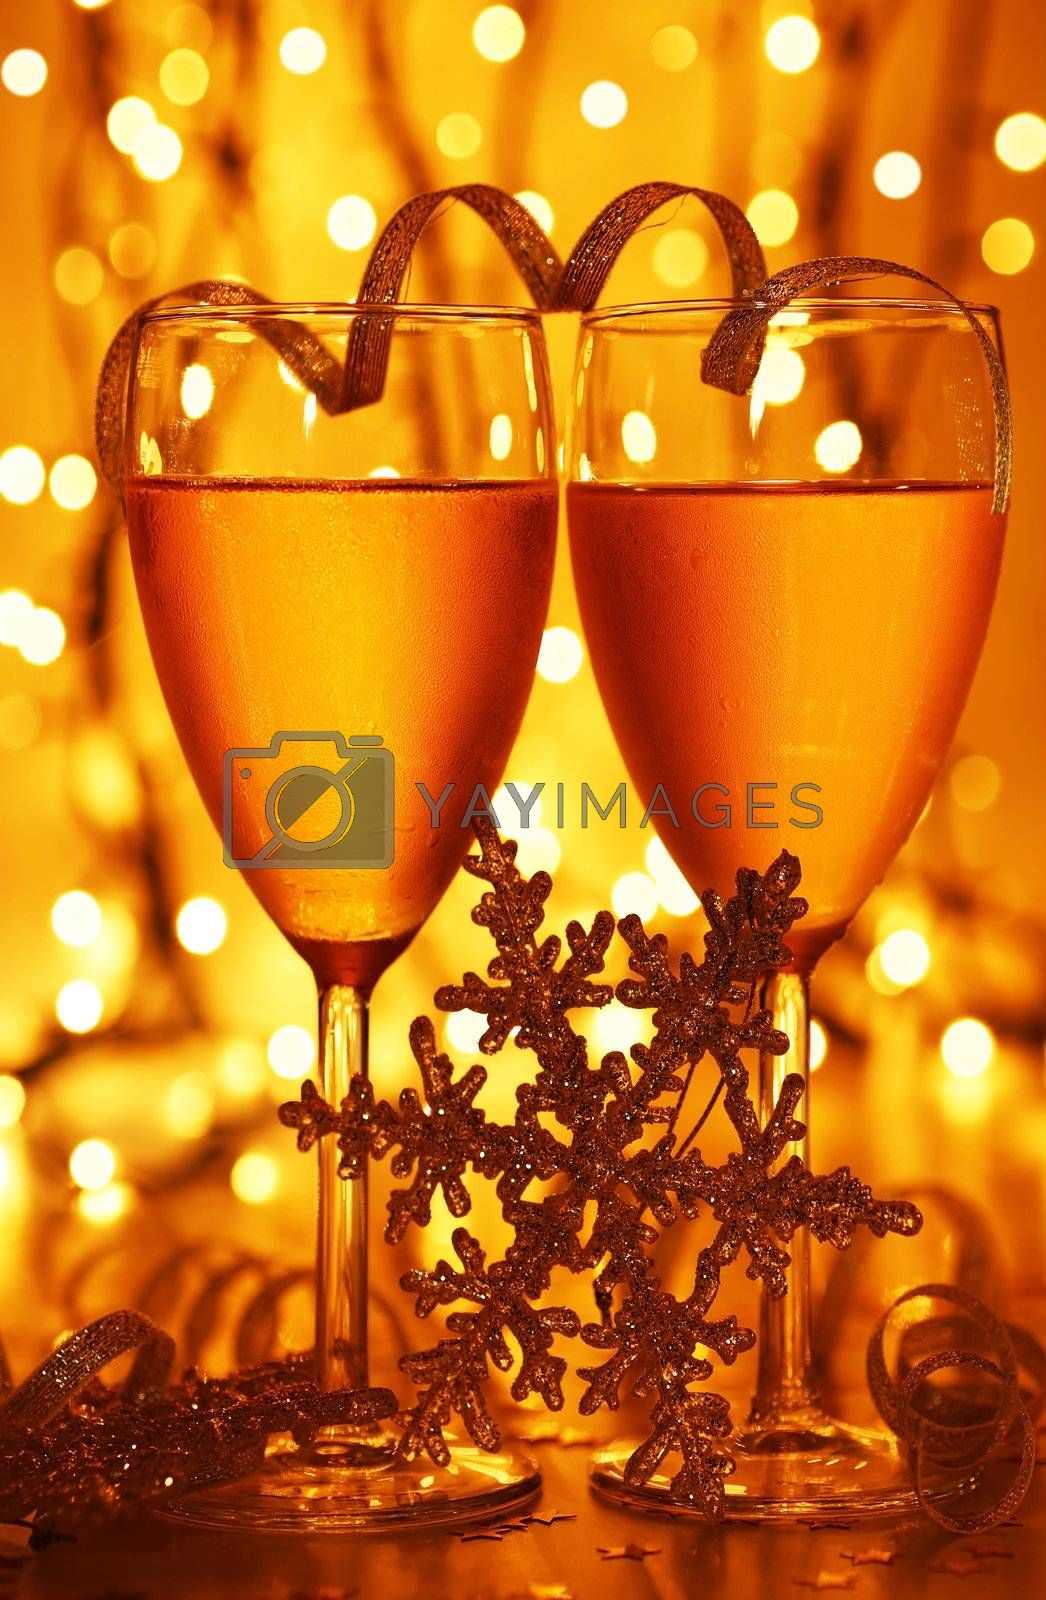 Romantic holiday dinner, celebration of Christmas or new year eve, party with Champagne and festive gold ornament decoration.